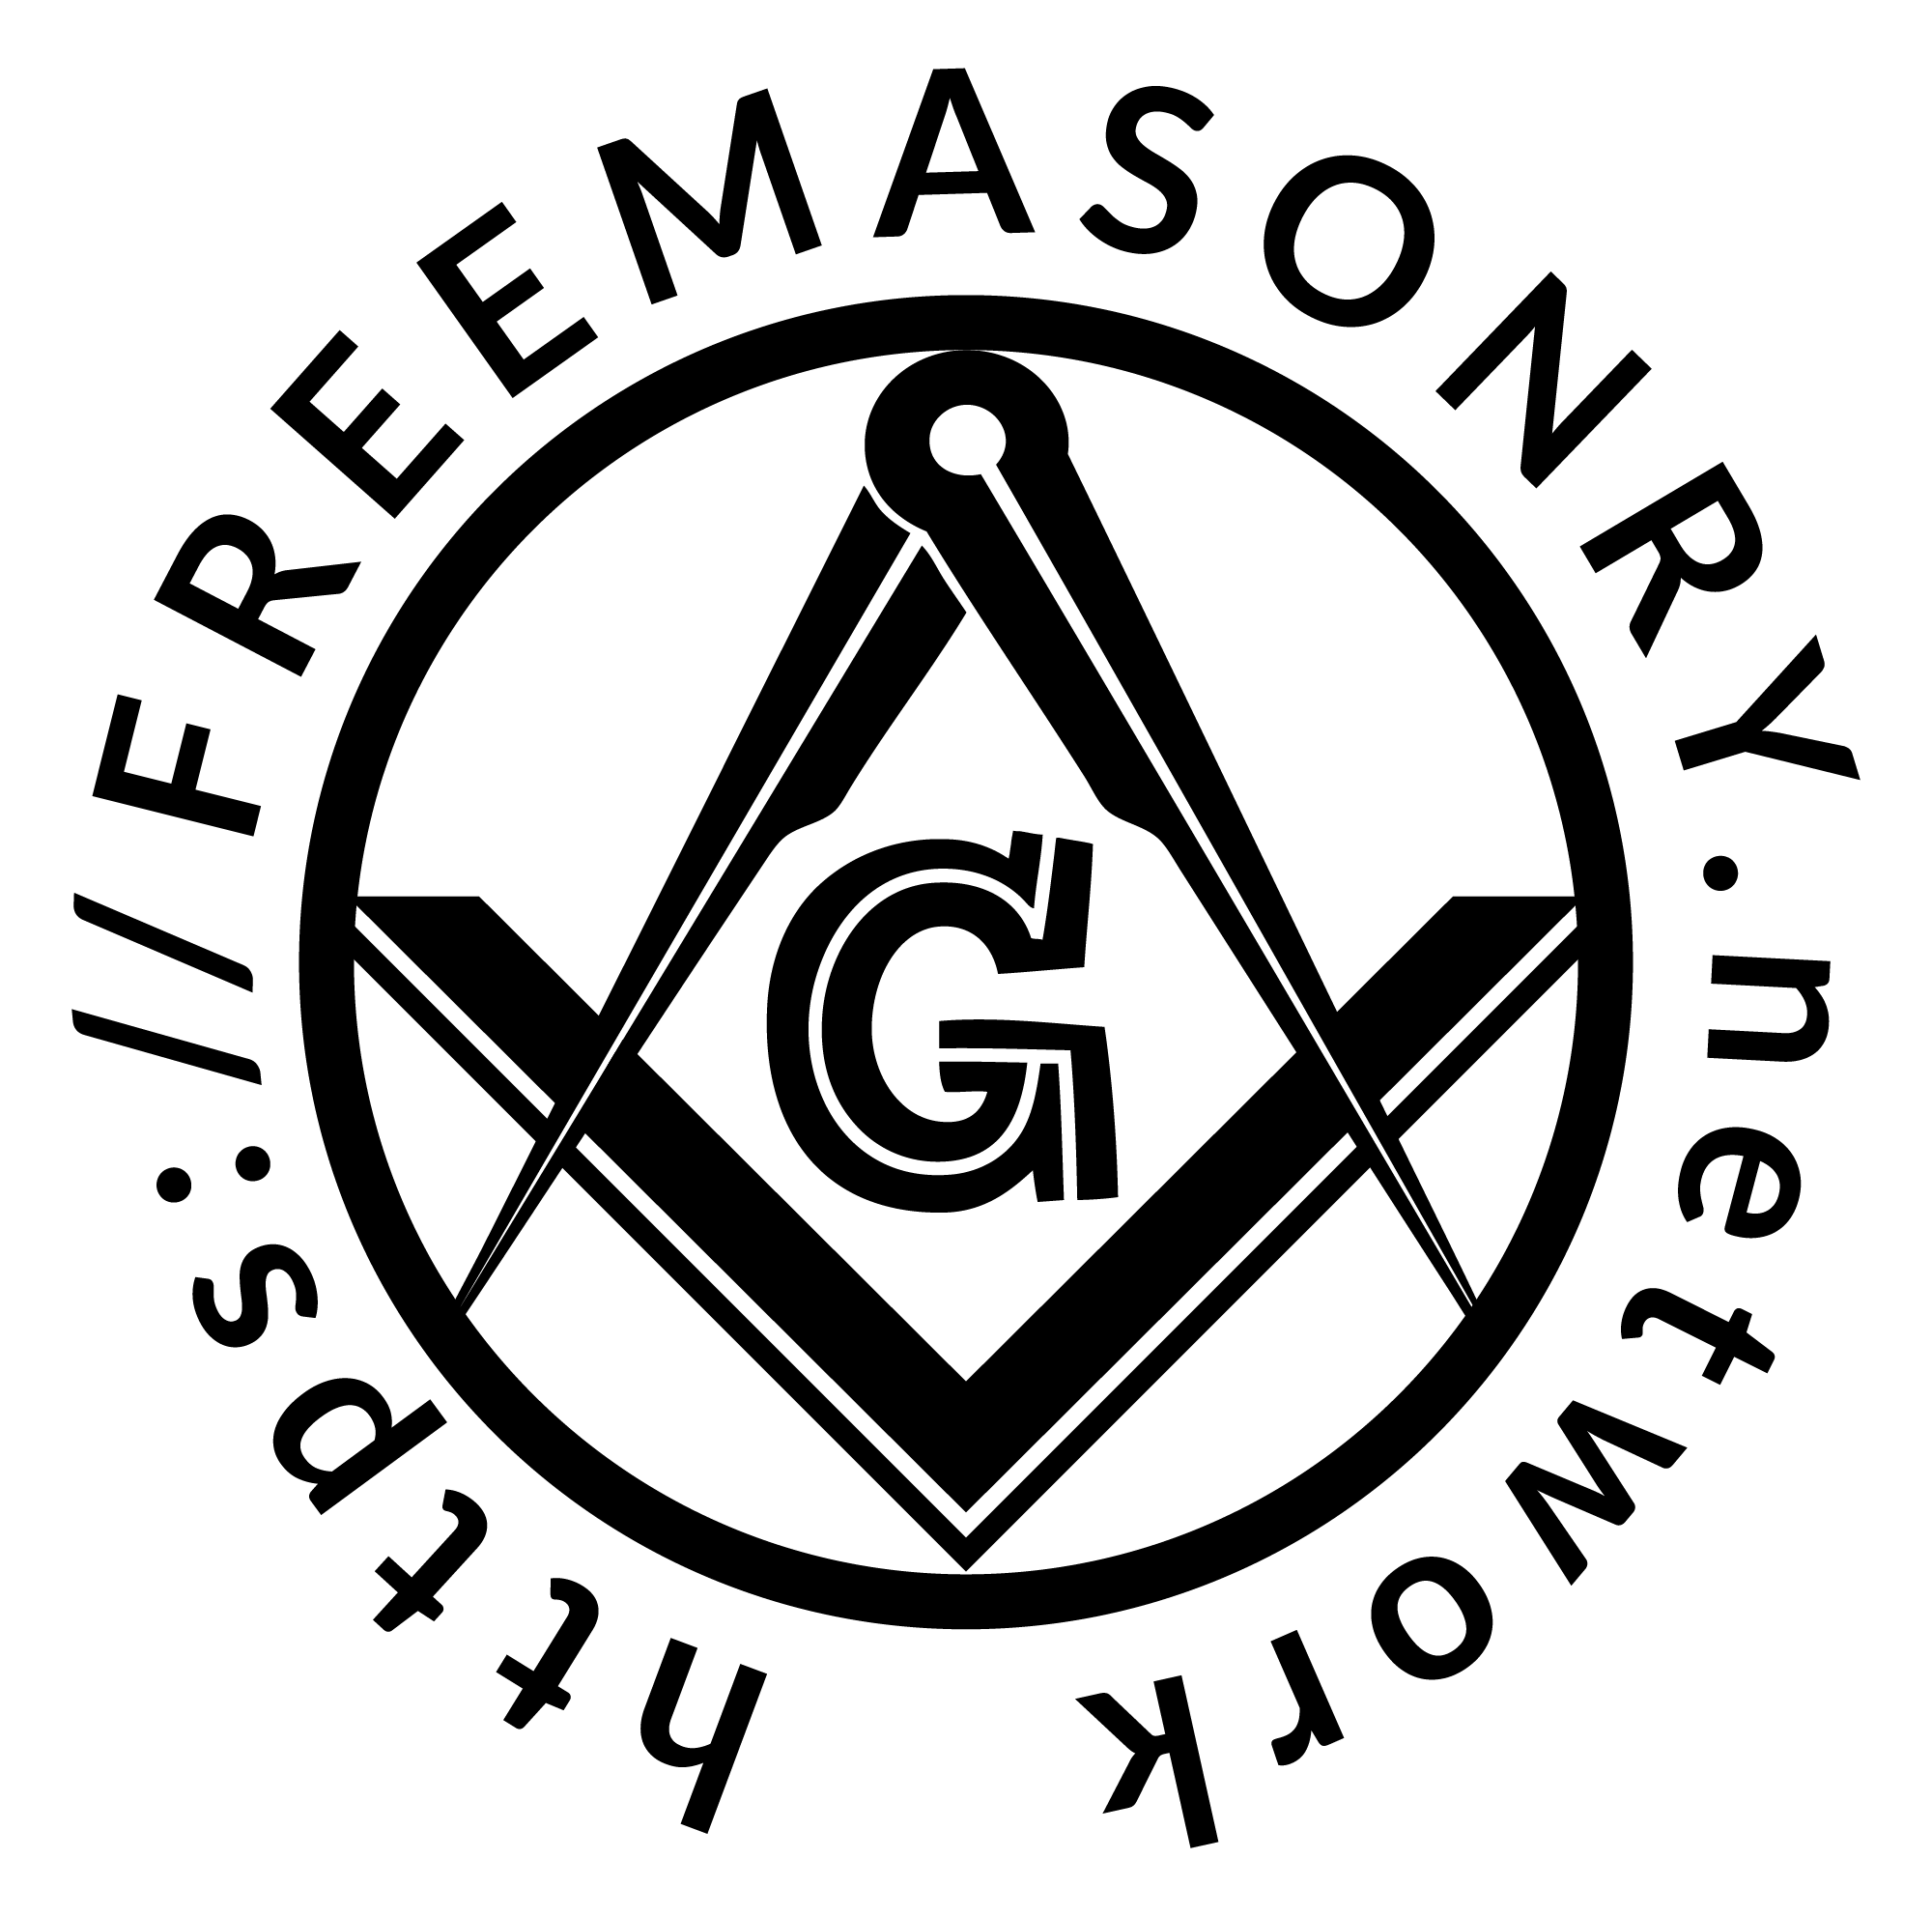 FREEMASONRY IN WASHINGTON, DC.